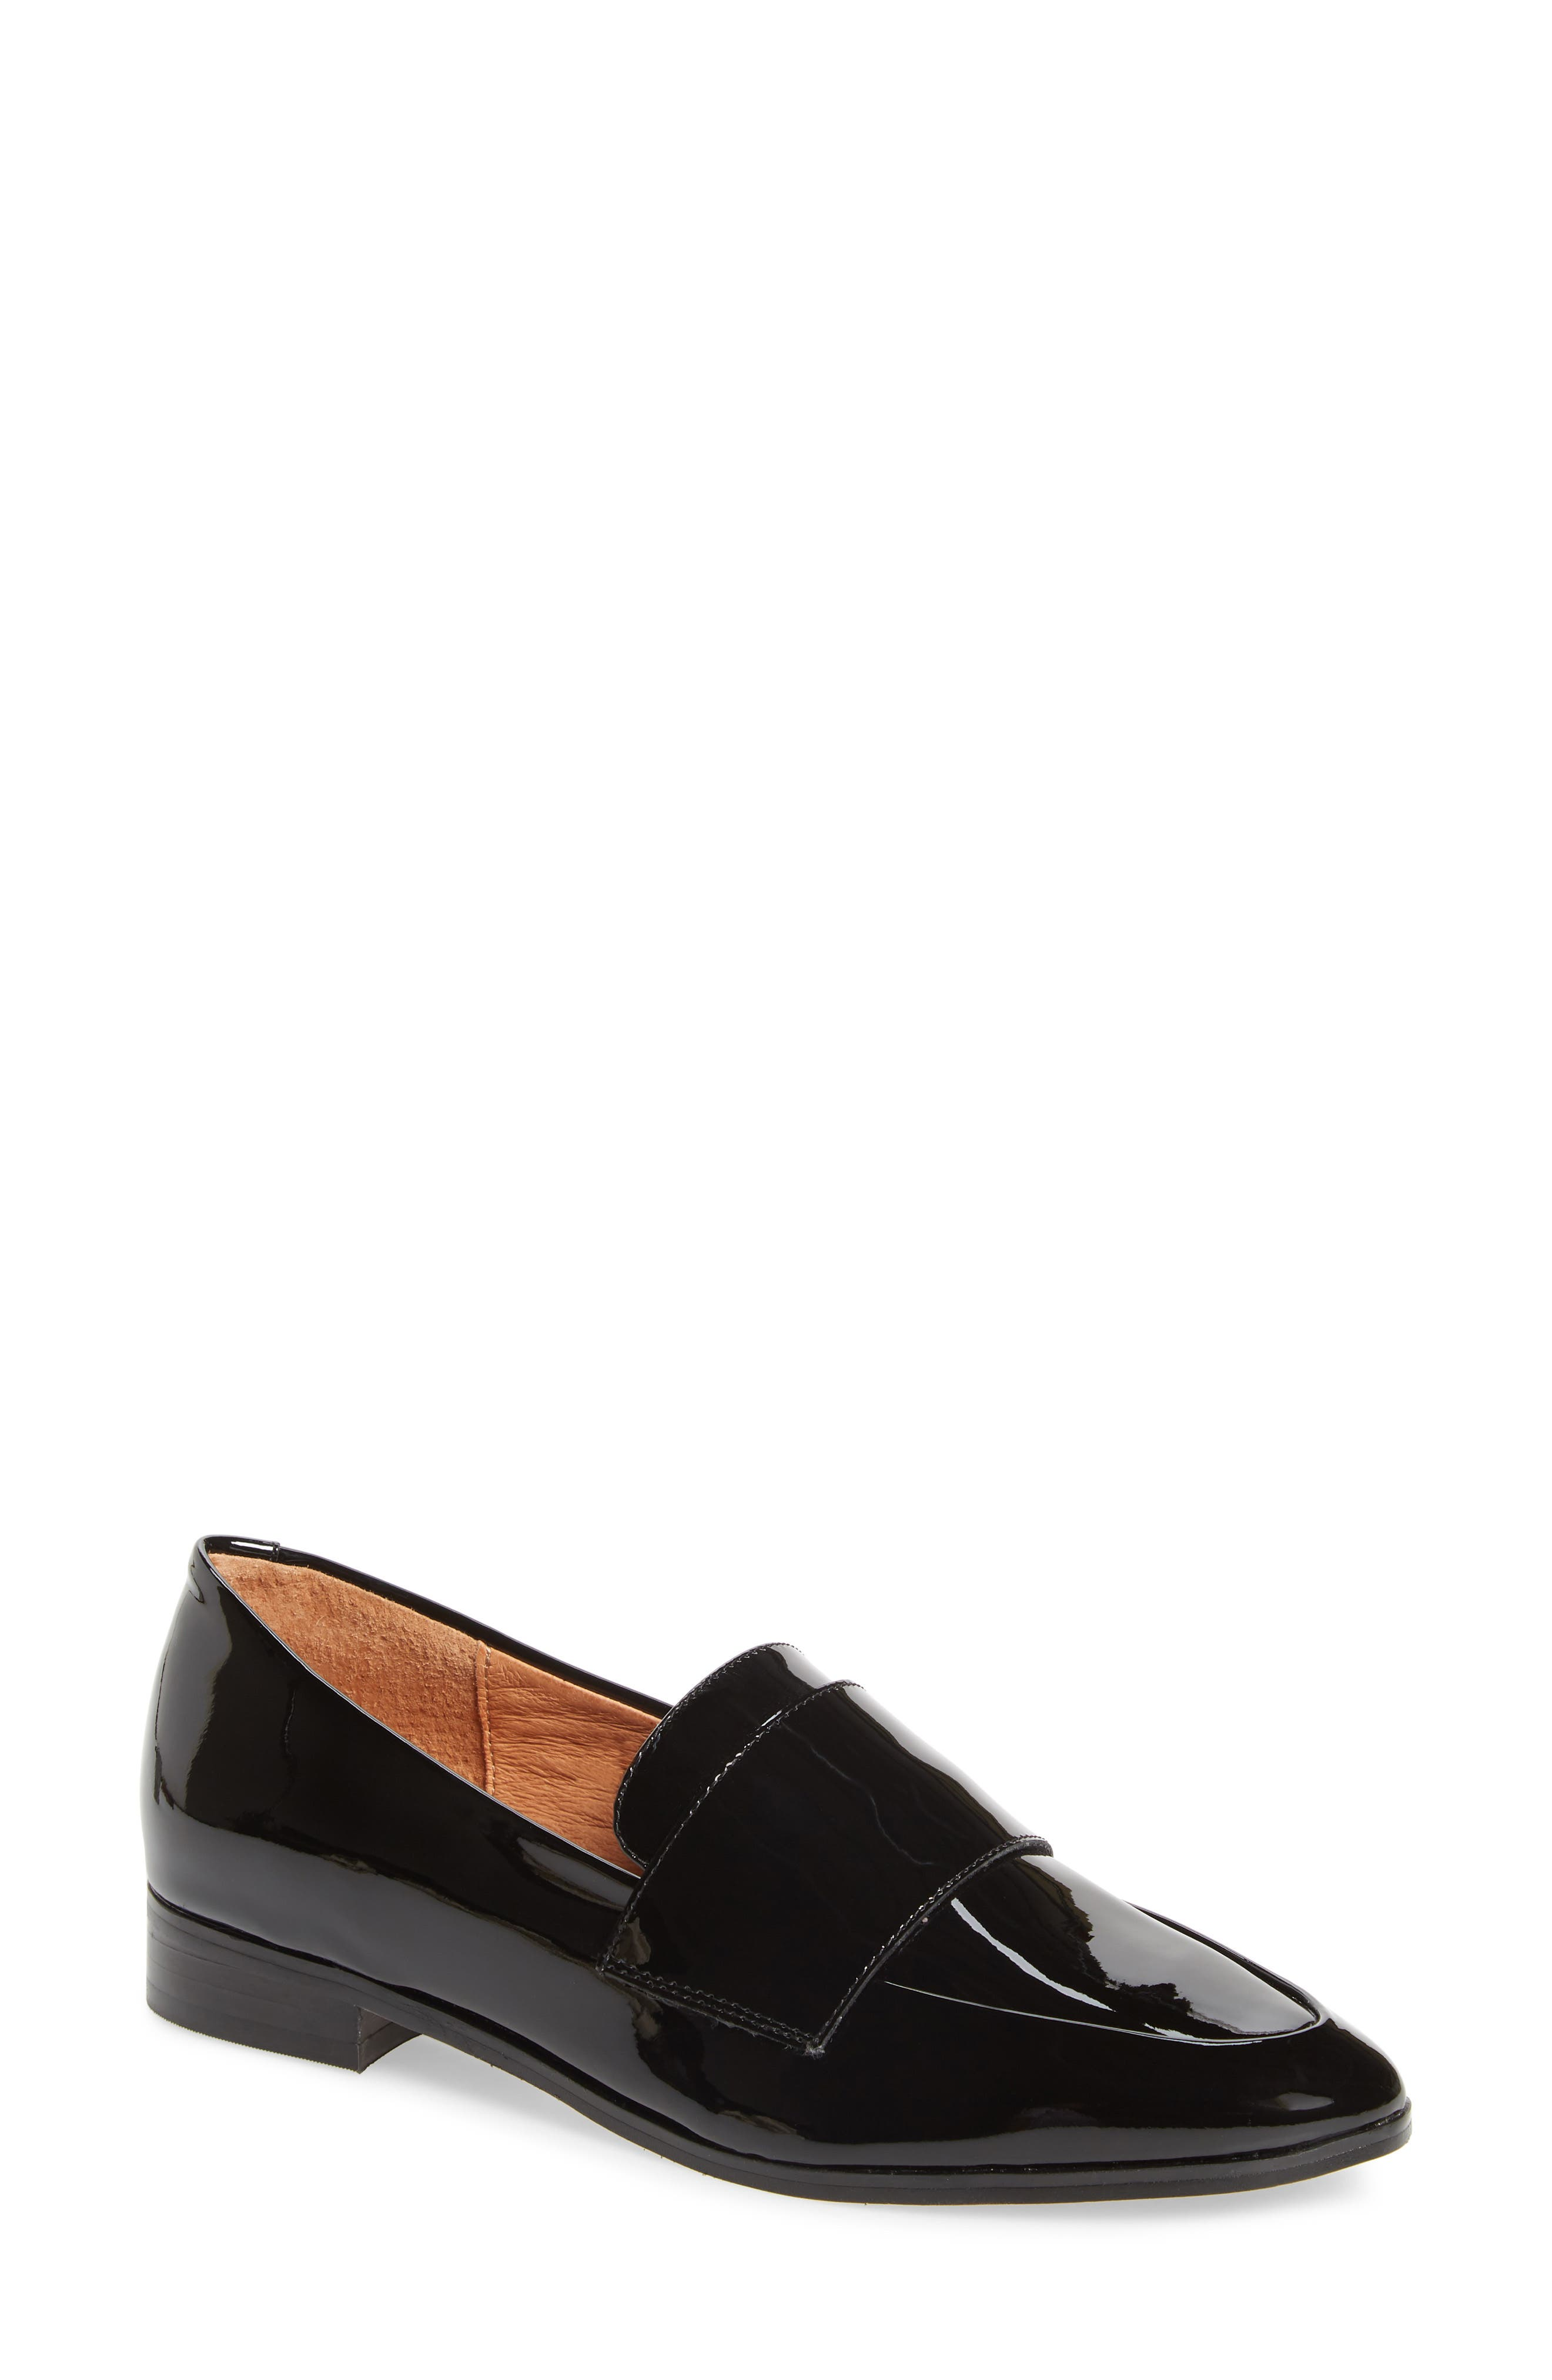 Emilia Loafer,                         Main,                         color, BLACK PATENT LEATHER